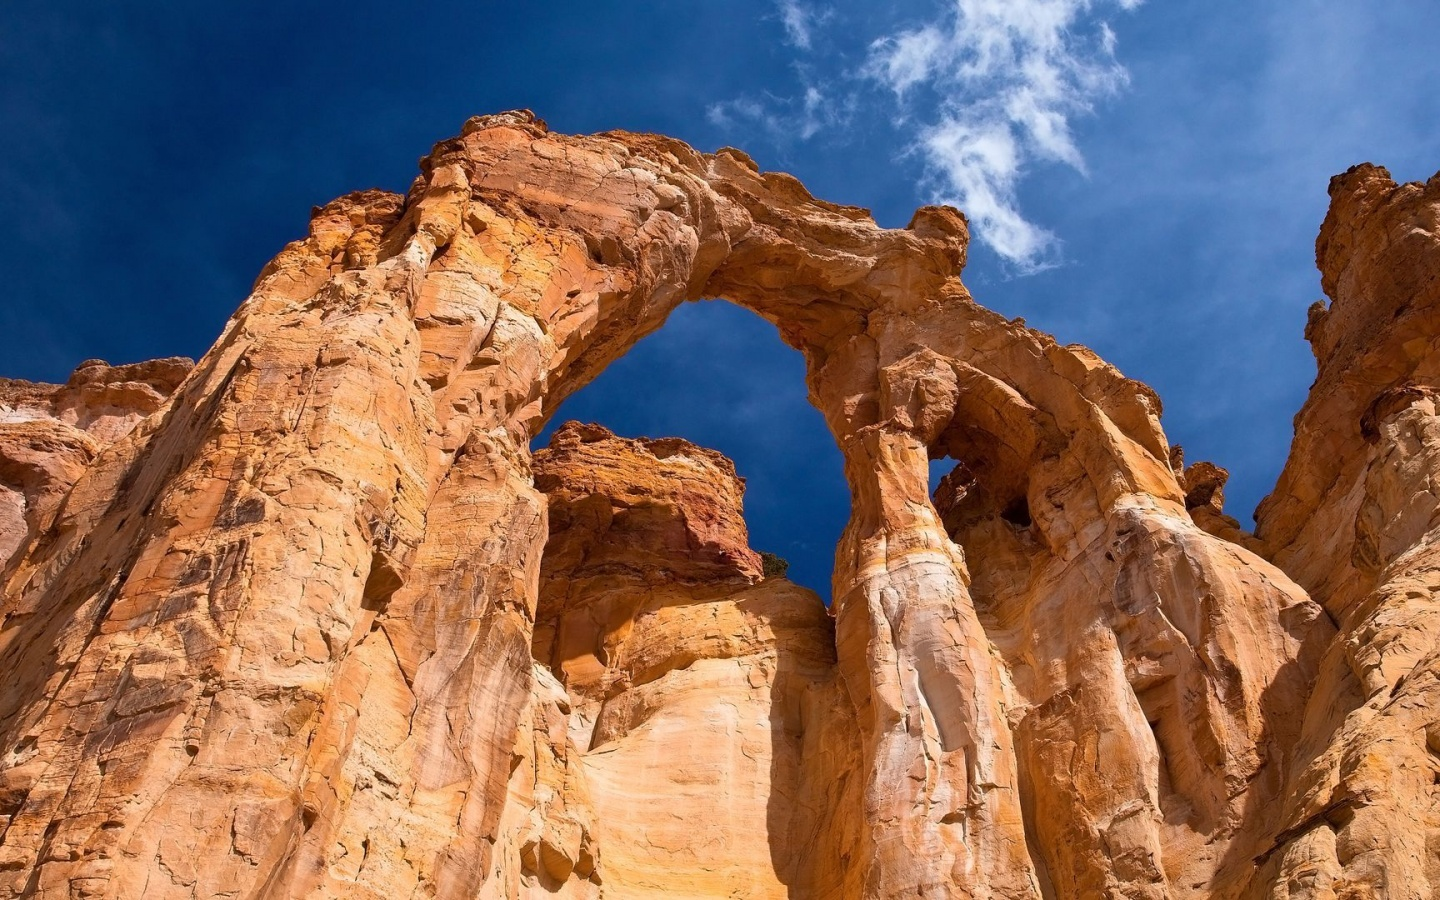 1440x900 Grosvenor Arch, Utah, grand staircase-escalante, national monument, usa, nature